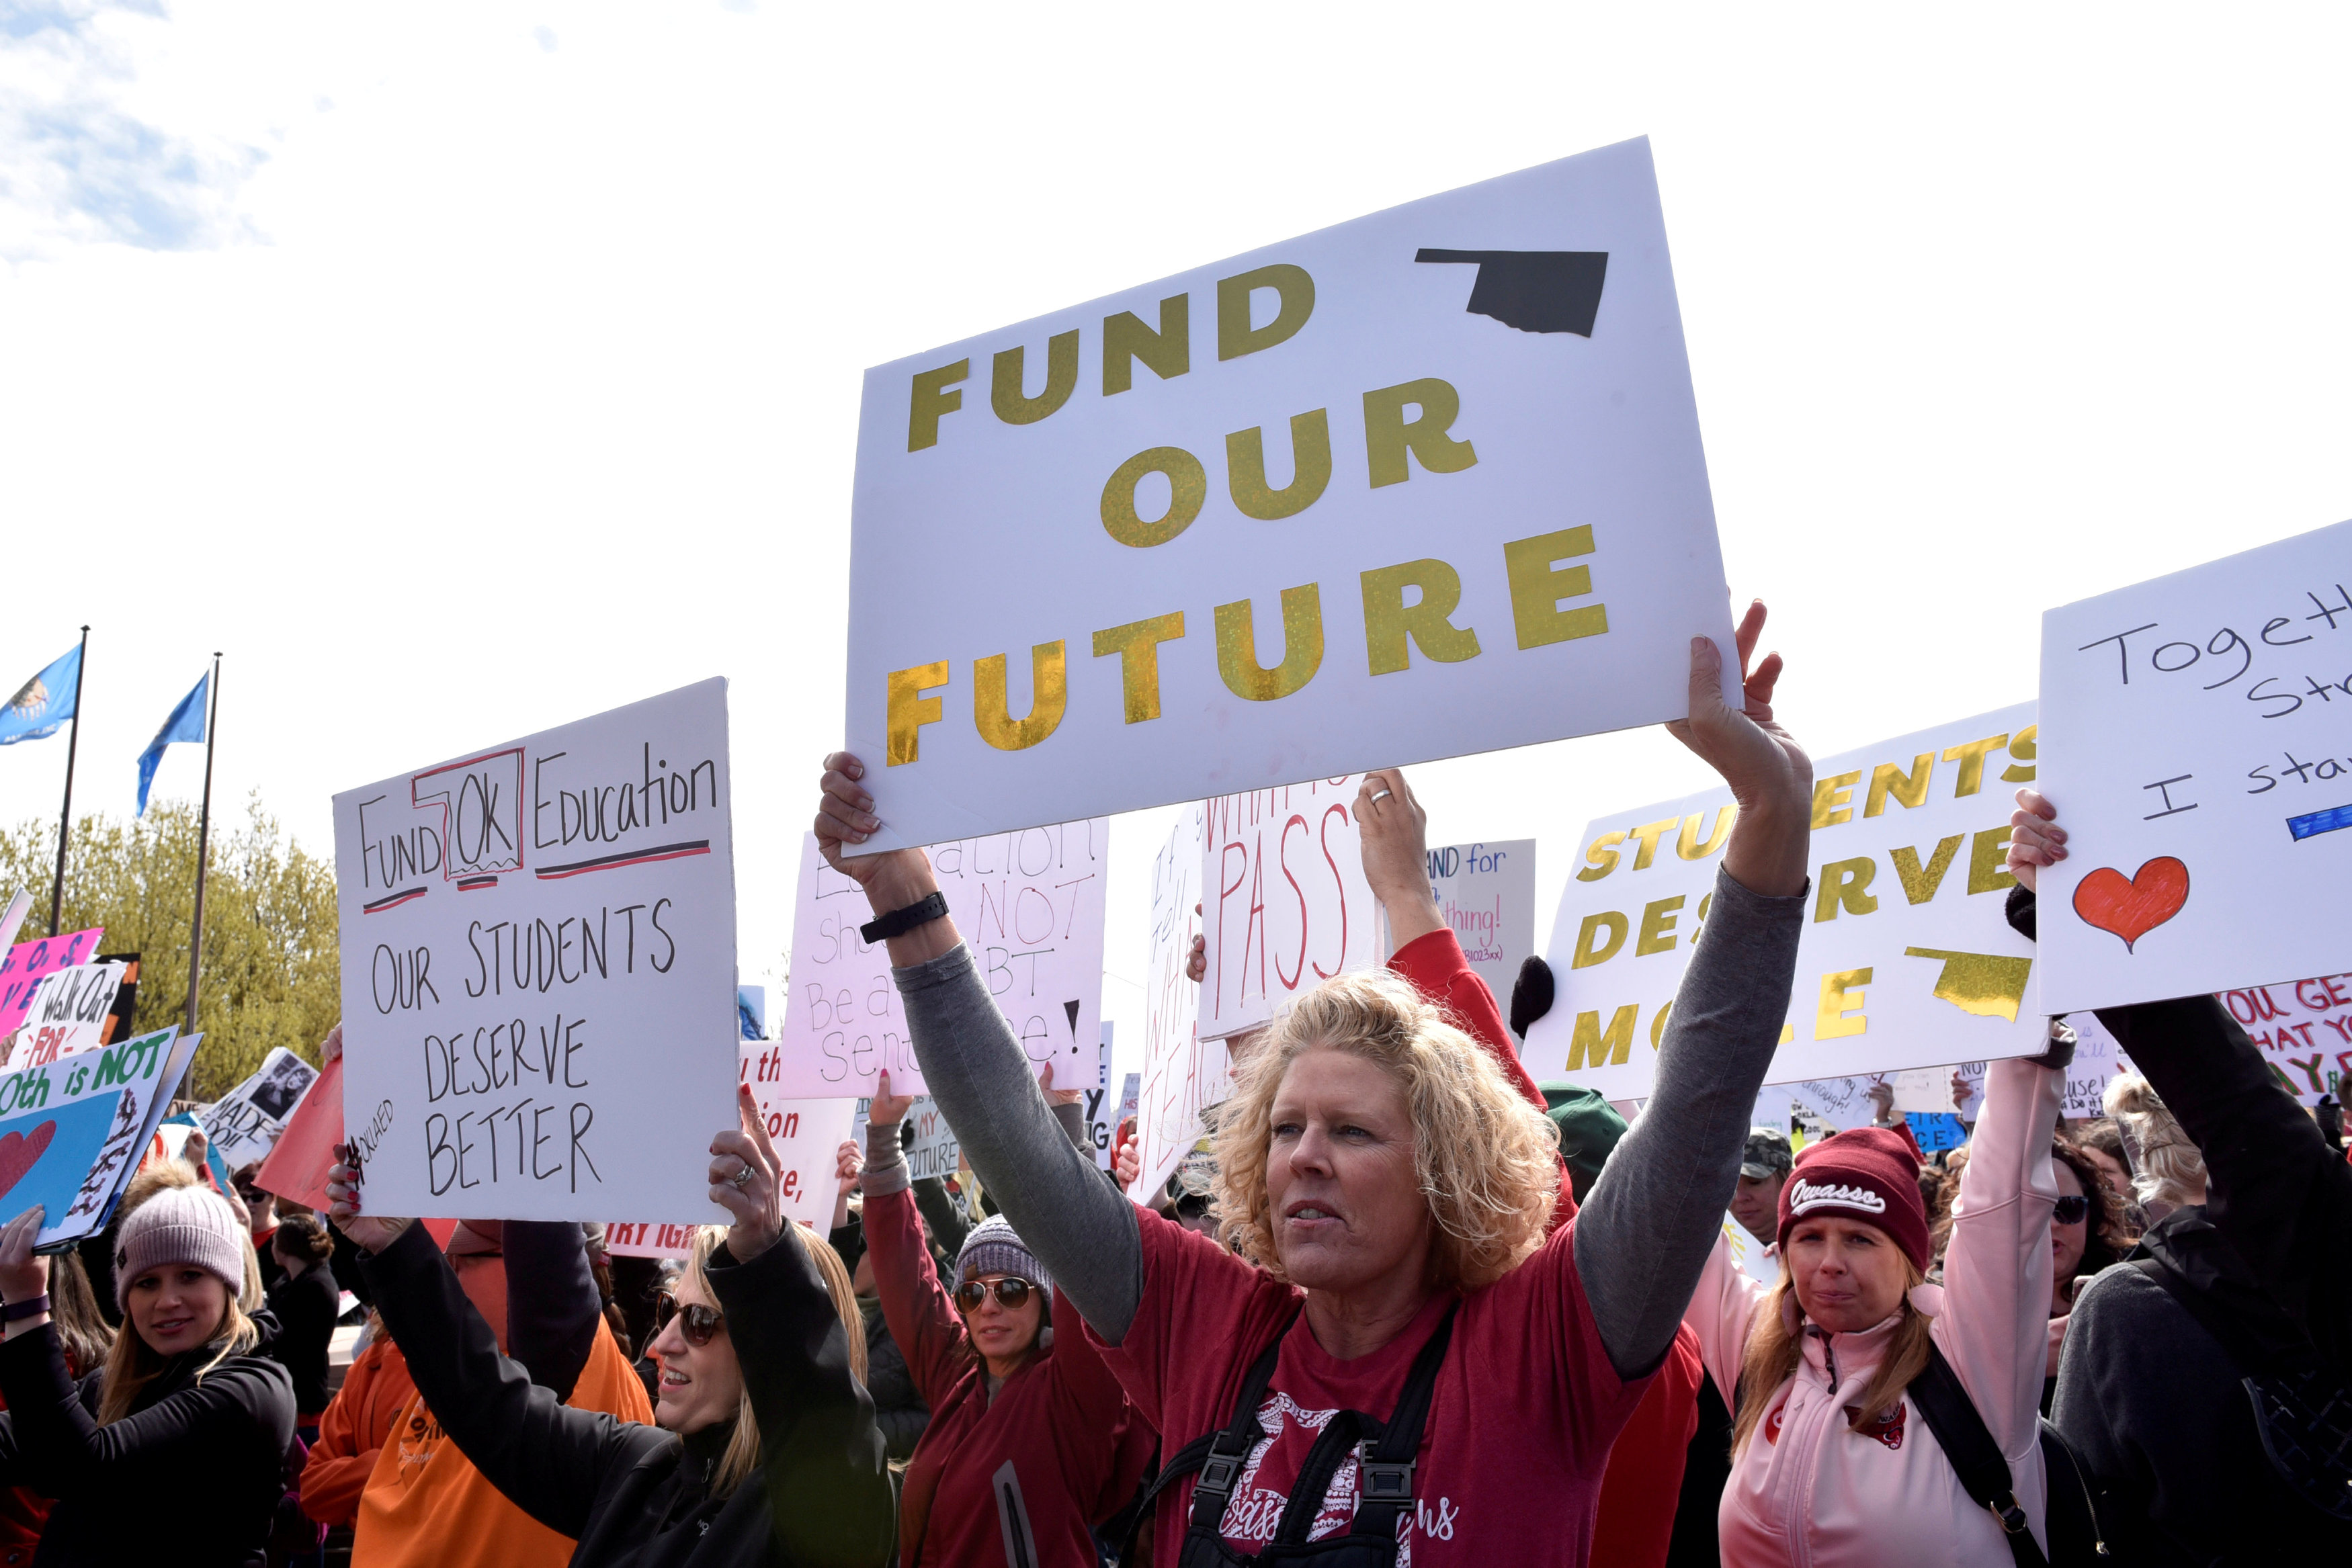 FILE PHOTO: Teachers rally outside the state Capitol on the second day of a teacher walkout to demand higher pay and more funding for education in Oklahoma City, Oklahoma, U.S., April 3, 2018. REUTERS/Nick Oxford/File Photo